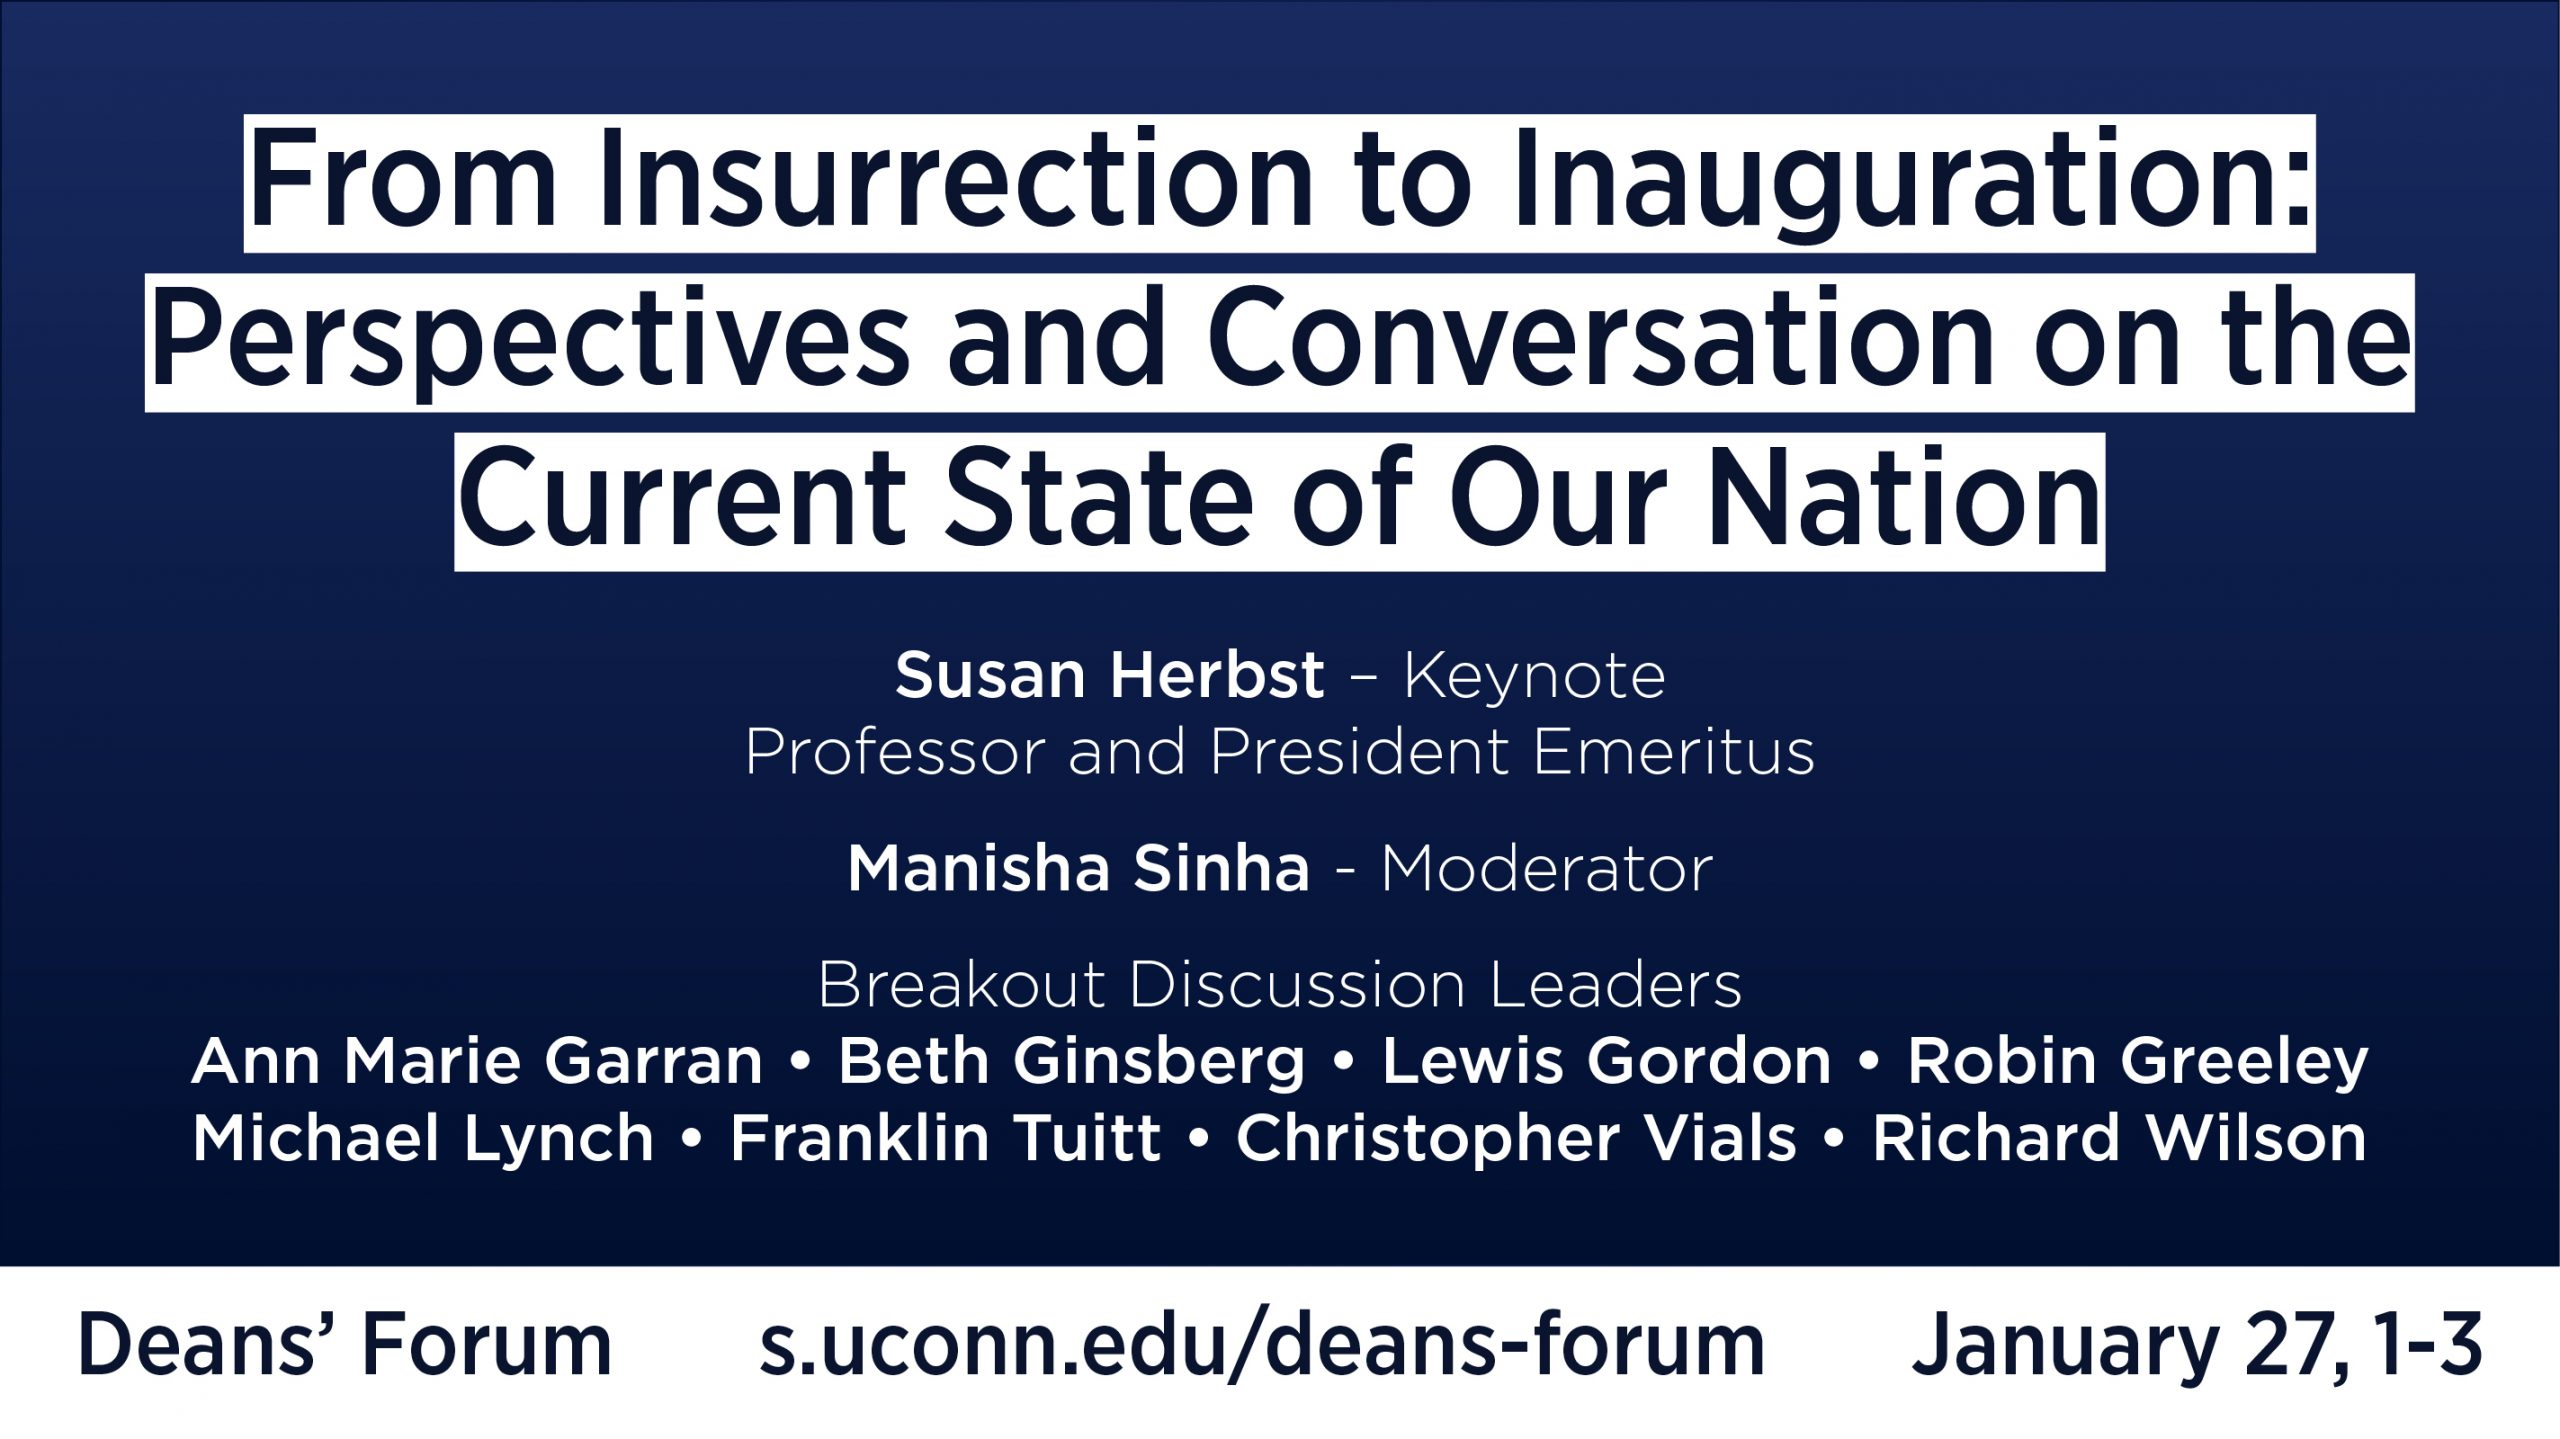 From Insurrection to Inauguration: Perspectives and Conversation on the Current State of Our Nation Susan Herbst – Keynote Professor and President Emeritus Manisha Sinha - Moderator Breakout Discussion Leaders Ann Marie Garran • Beth Ginsberg • Lewis Gordon • Robin Greeley Michael Lynch • Franklin Tuitt • Christopher Vials • Richard Wilson Deans' Forum s.uconn.edu/deans-forum January 27, 1-3